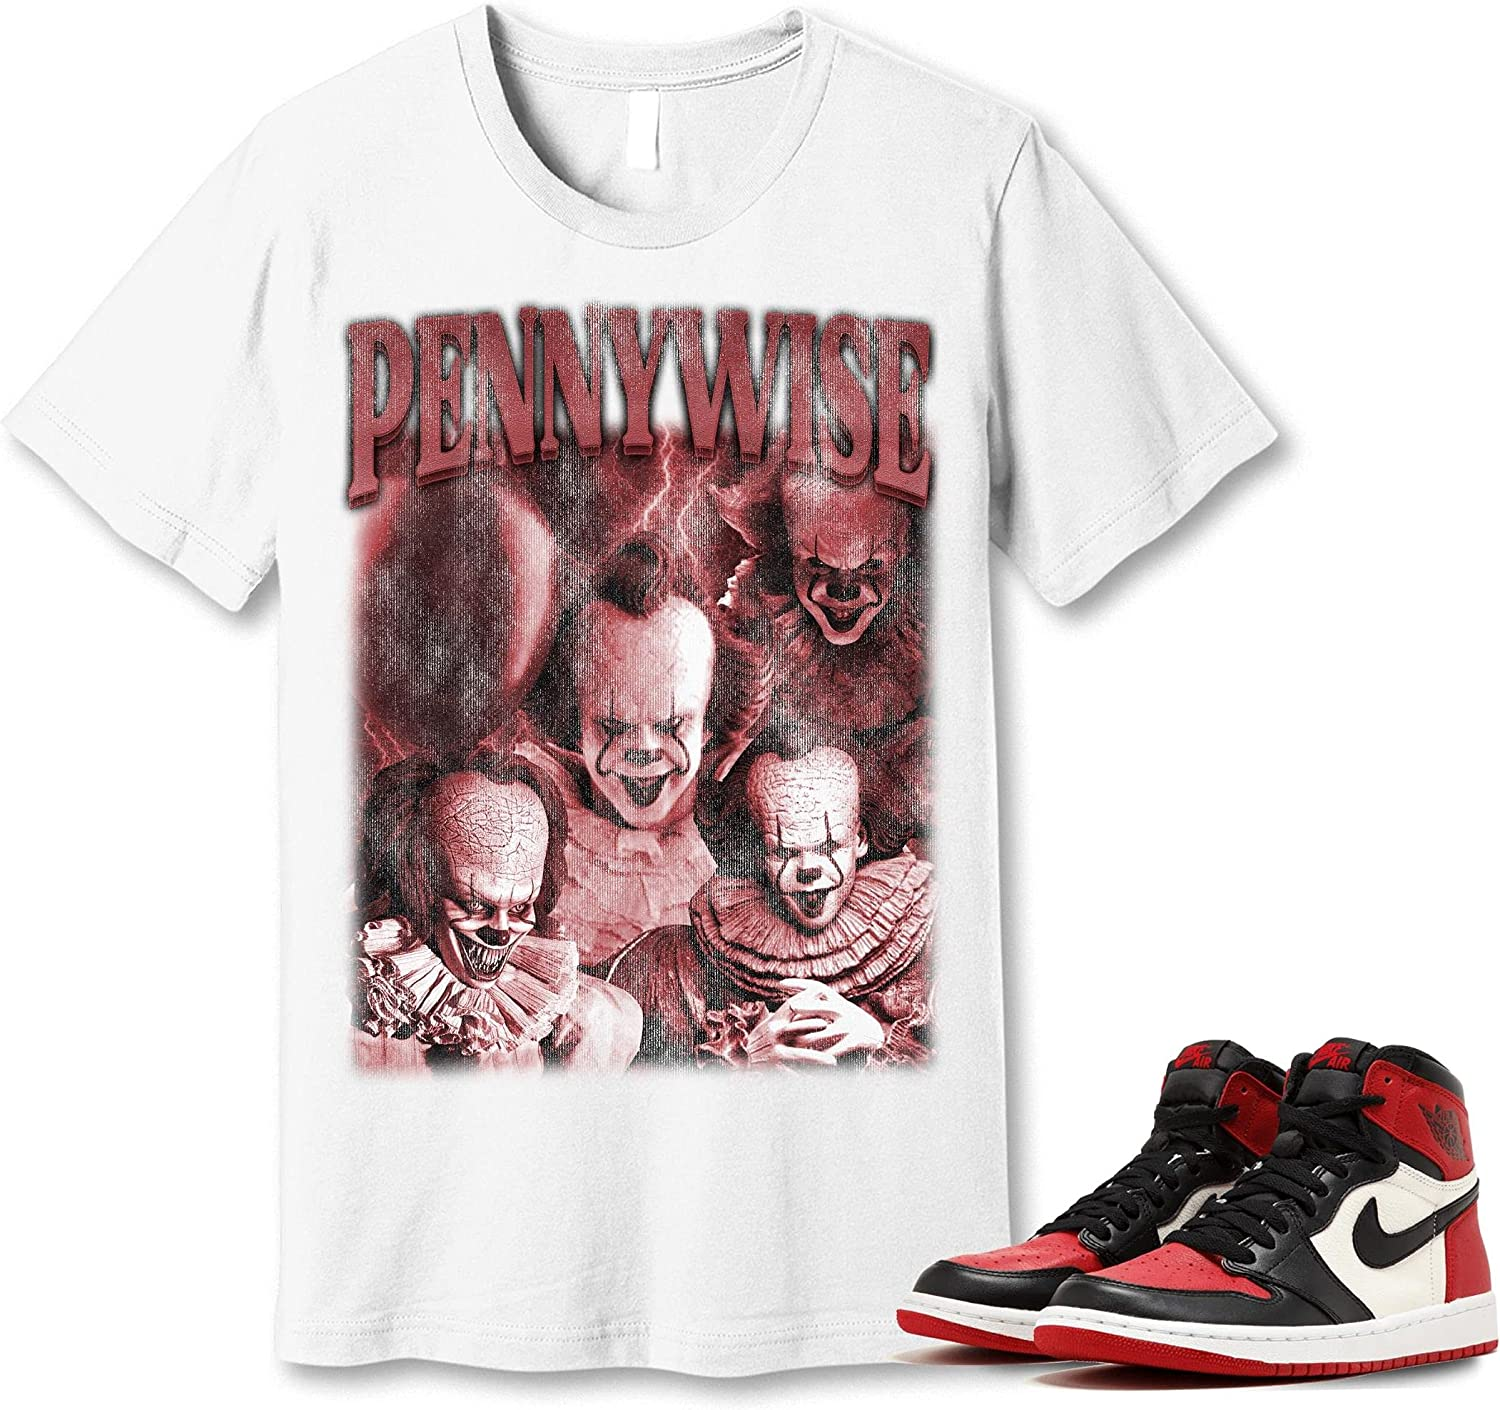 #Pennywise T-Shirt to Match Jordan 1 OFFicial Got Toe Snkrs Bred Sneaker 2021